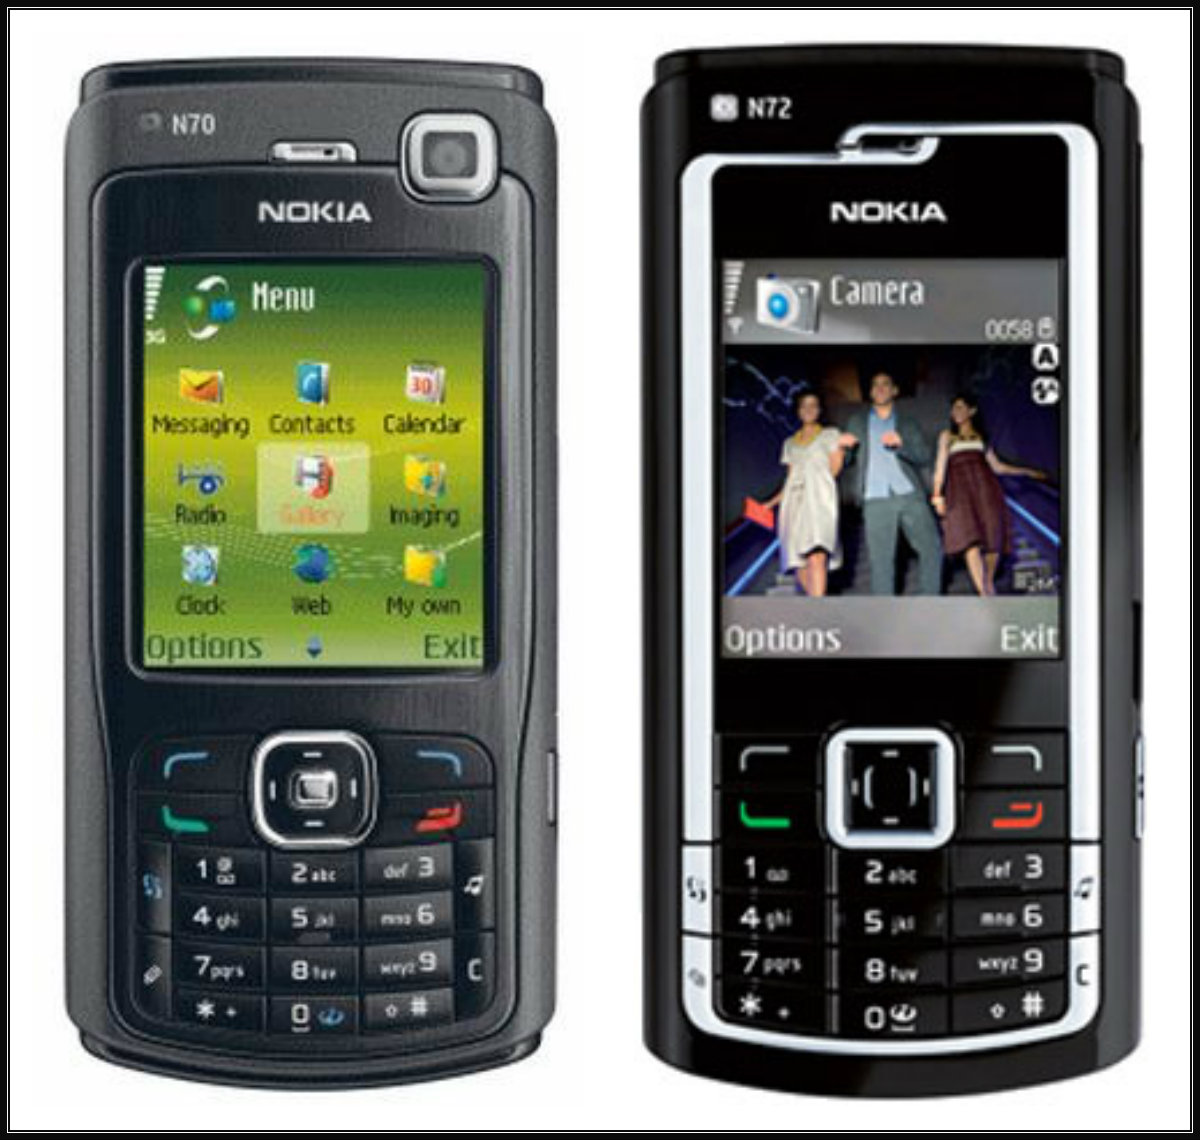 Nokia S60 Manual Auto Electrical Wiring Diagram Fuse Box For Bible In Mobile Download Reader Symbian Series